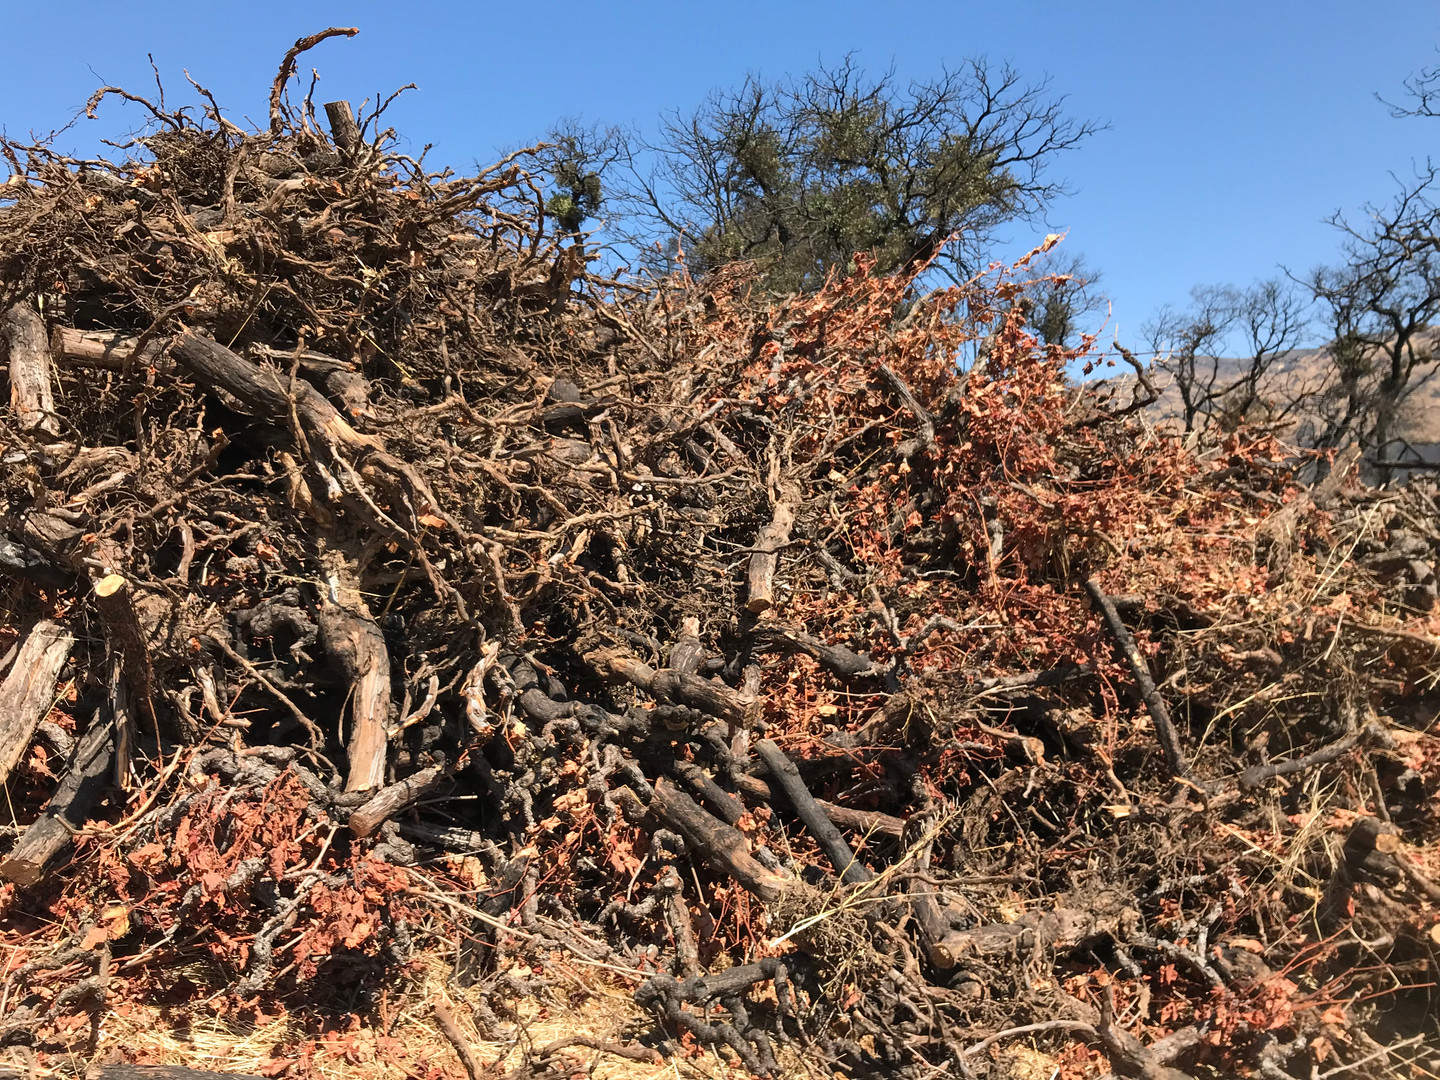 A pile of burnt vines that were cleared after the Atlas Fire